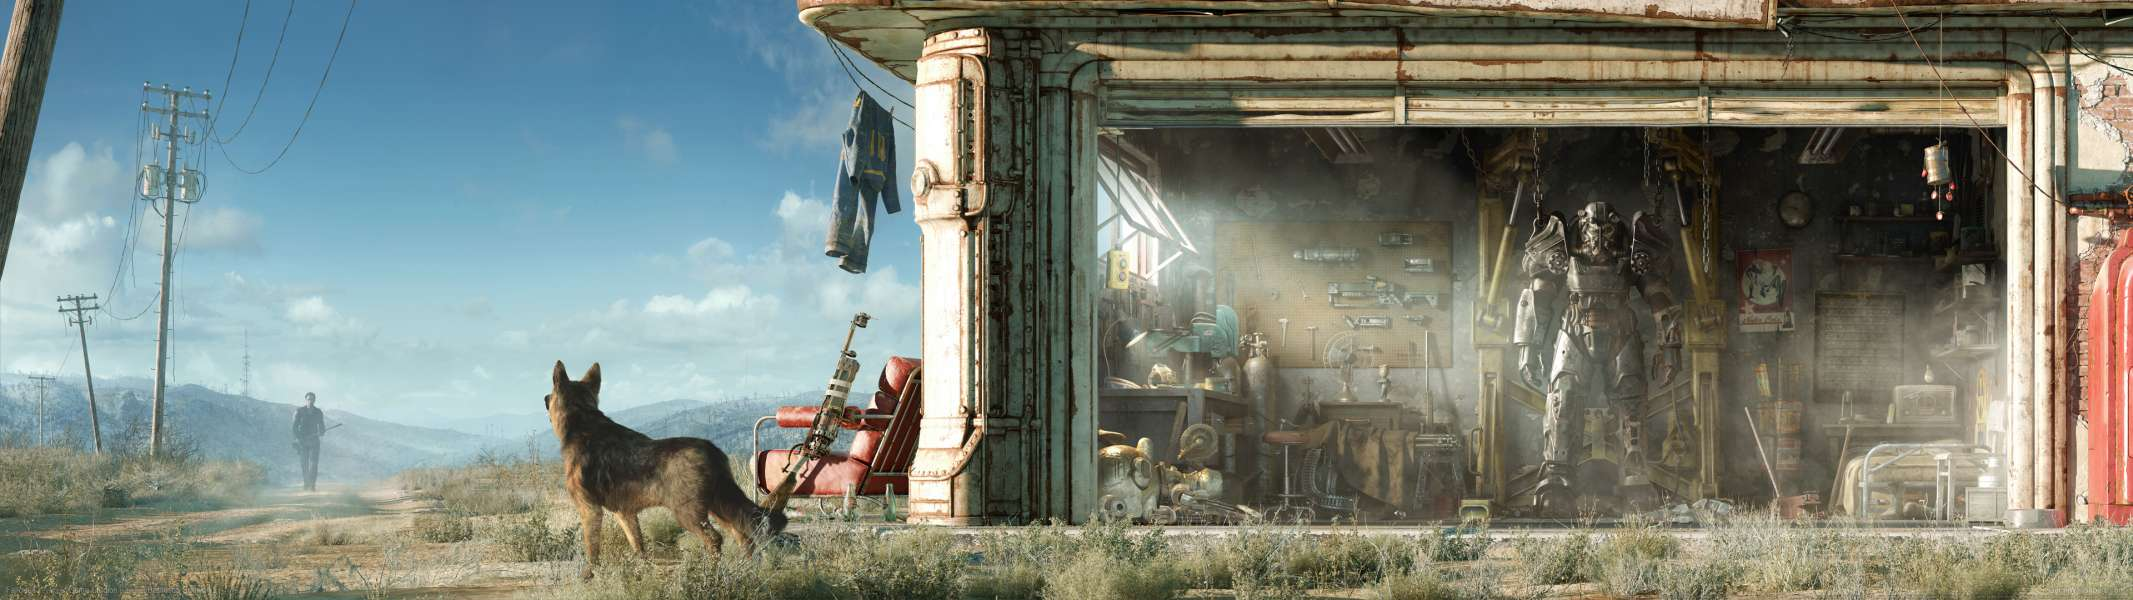 Fallout 4 dual screen achtergrond